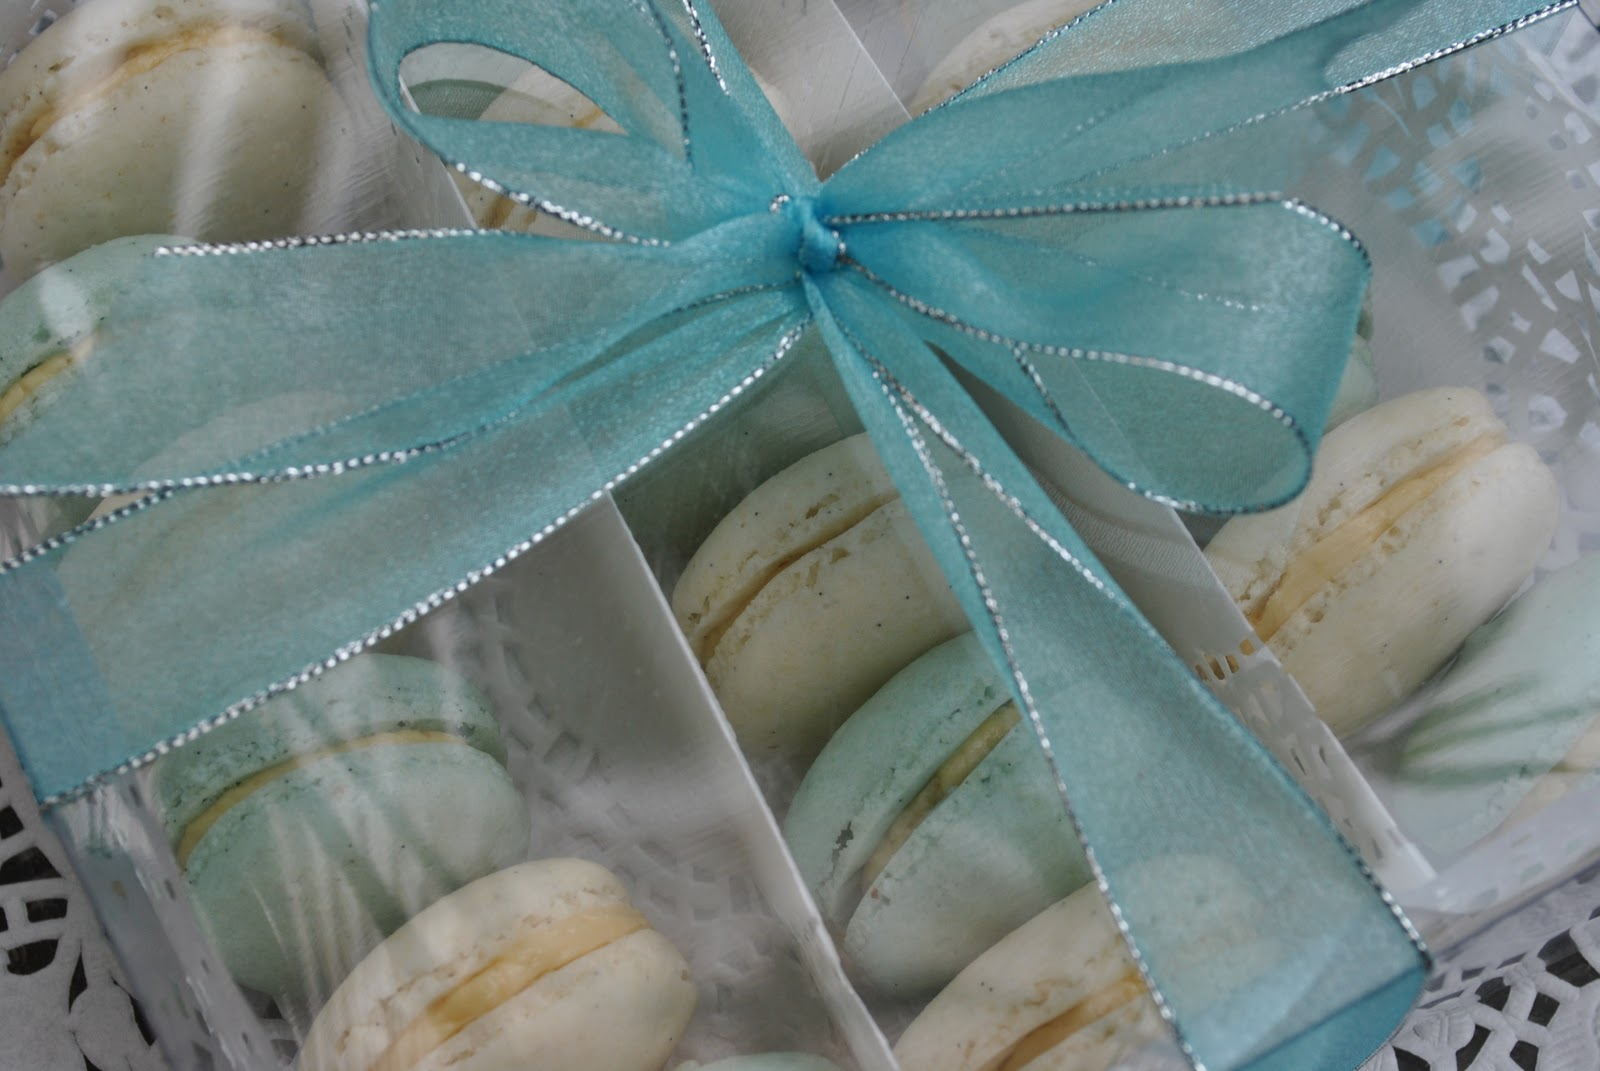 Herbal hibiscus tea 55g dr bean australia - Idrina Also Ordered 2 Dozen Macarons In White And Baby Blue Colours I Made Vanilla Bean Macarons With French Maple Pastry Cream Fillings Thank You Id